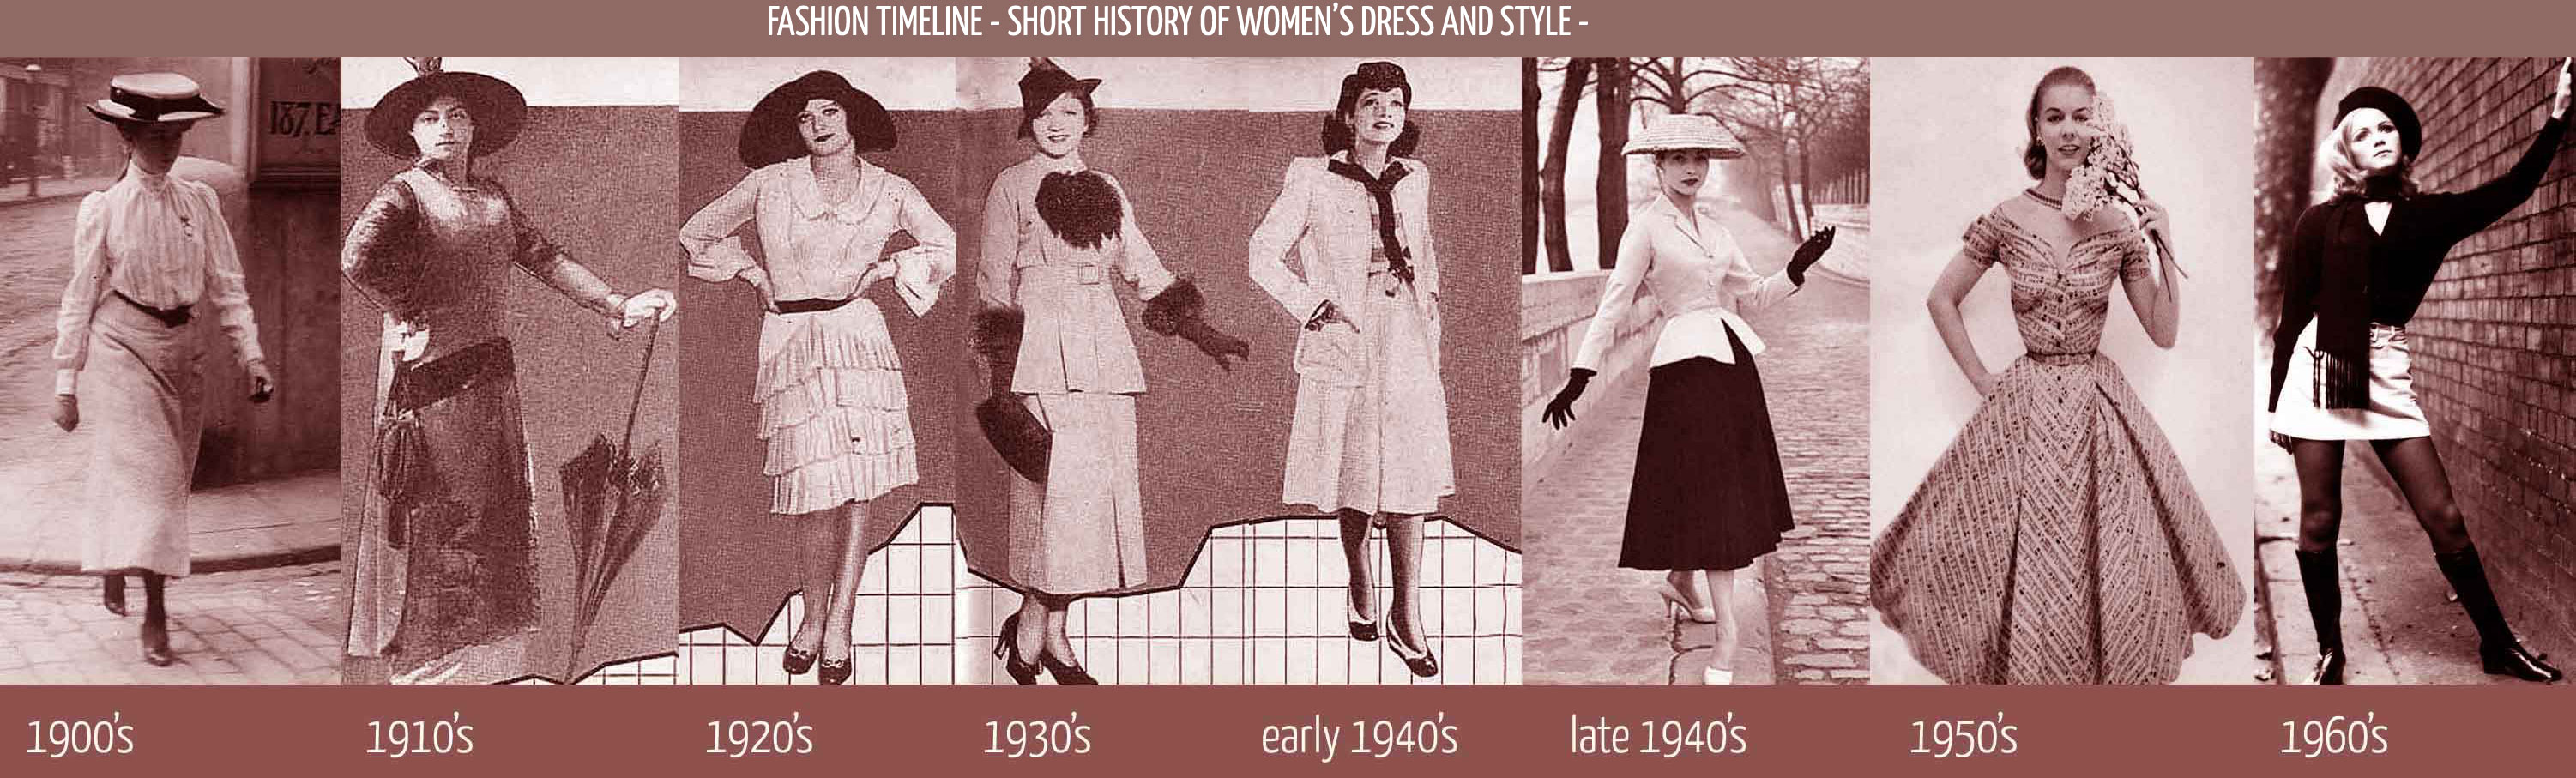 Fashion Timeline and Hemline Index -1900 to 1970 - Illustration